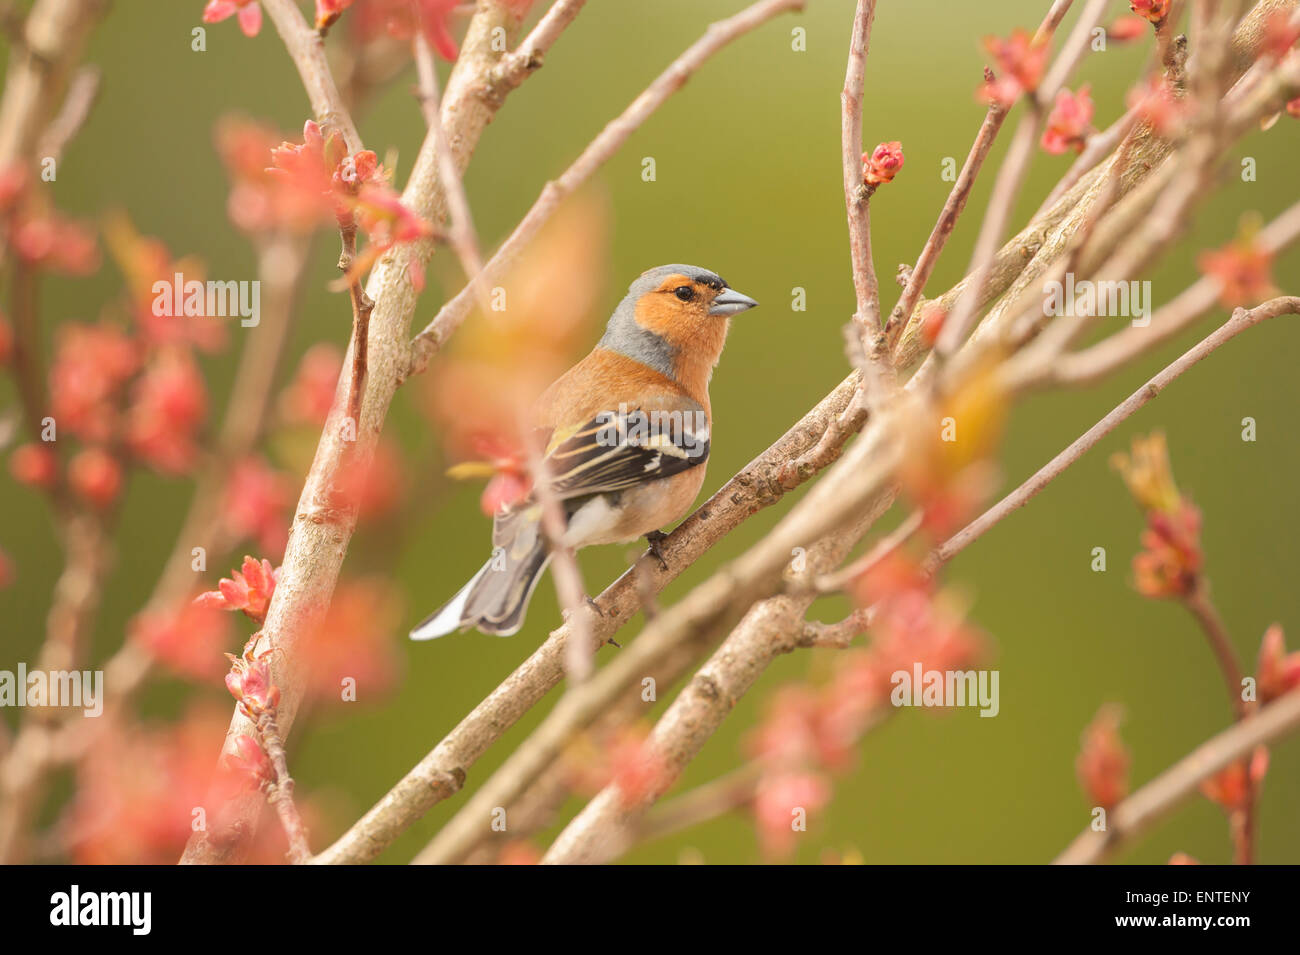 Close up of a Chaffinch (Fringilla coelebs) bird sitting in a cherry tree in the spring season, UK - Stock Image